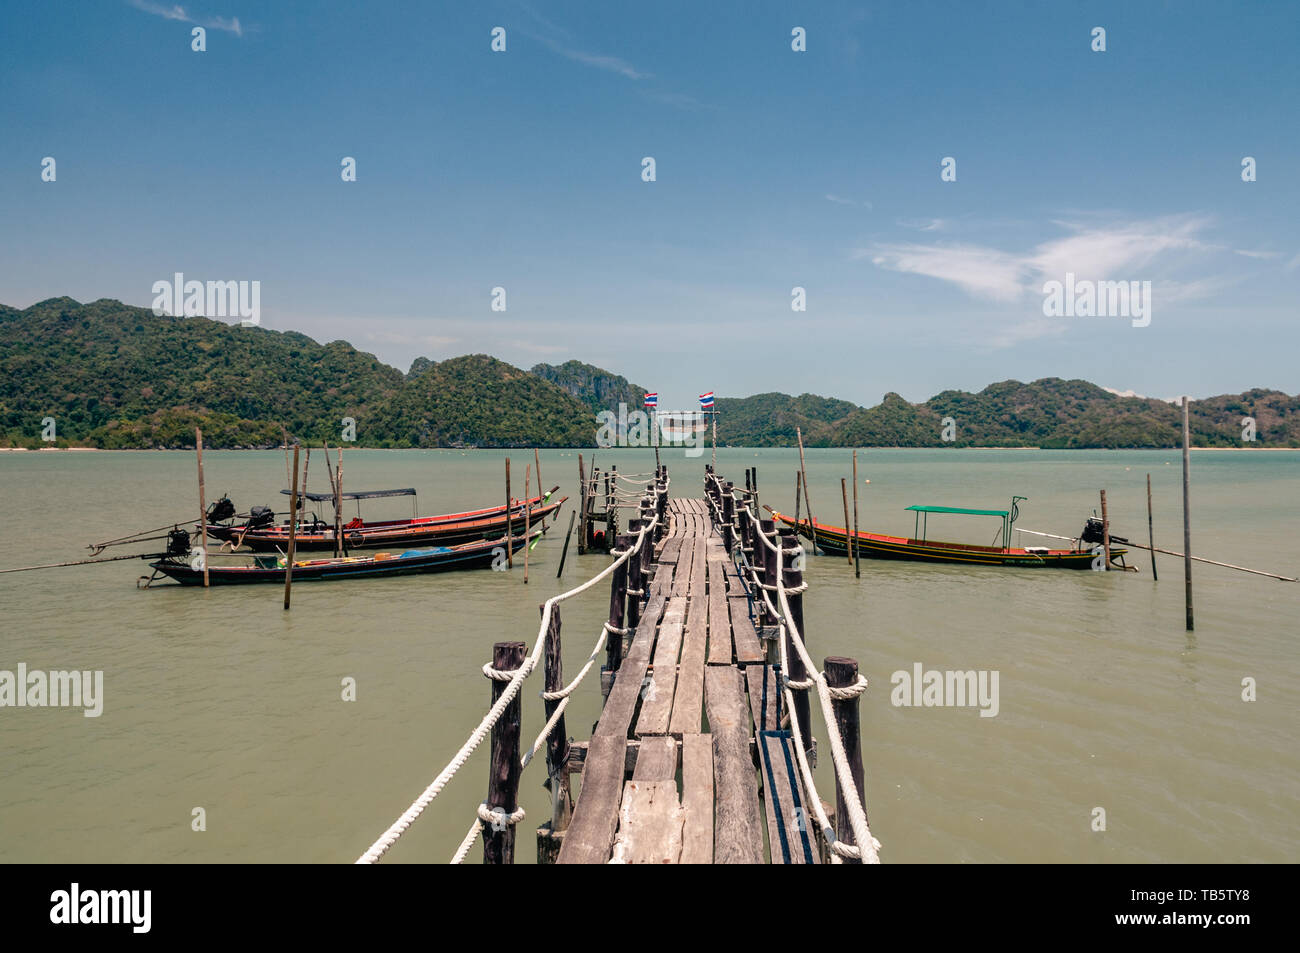 Wooden pier and thai long tail boats in Talet bay at Nakhon Si Thammarat province of Thailand. - Stock Image